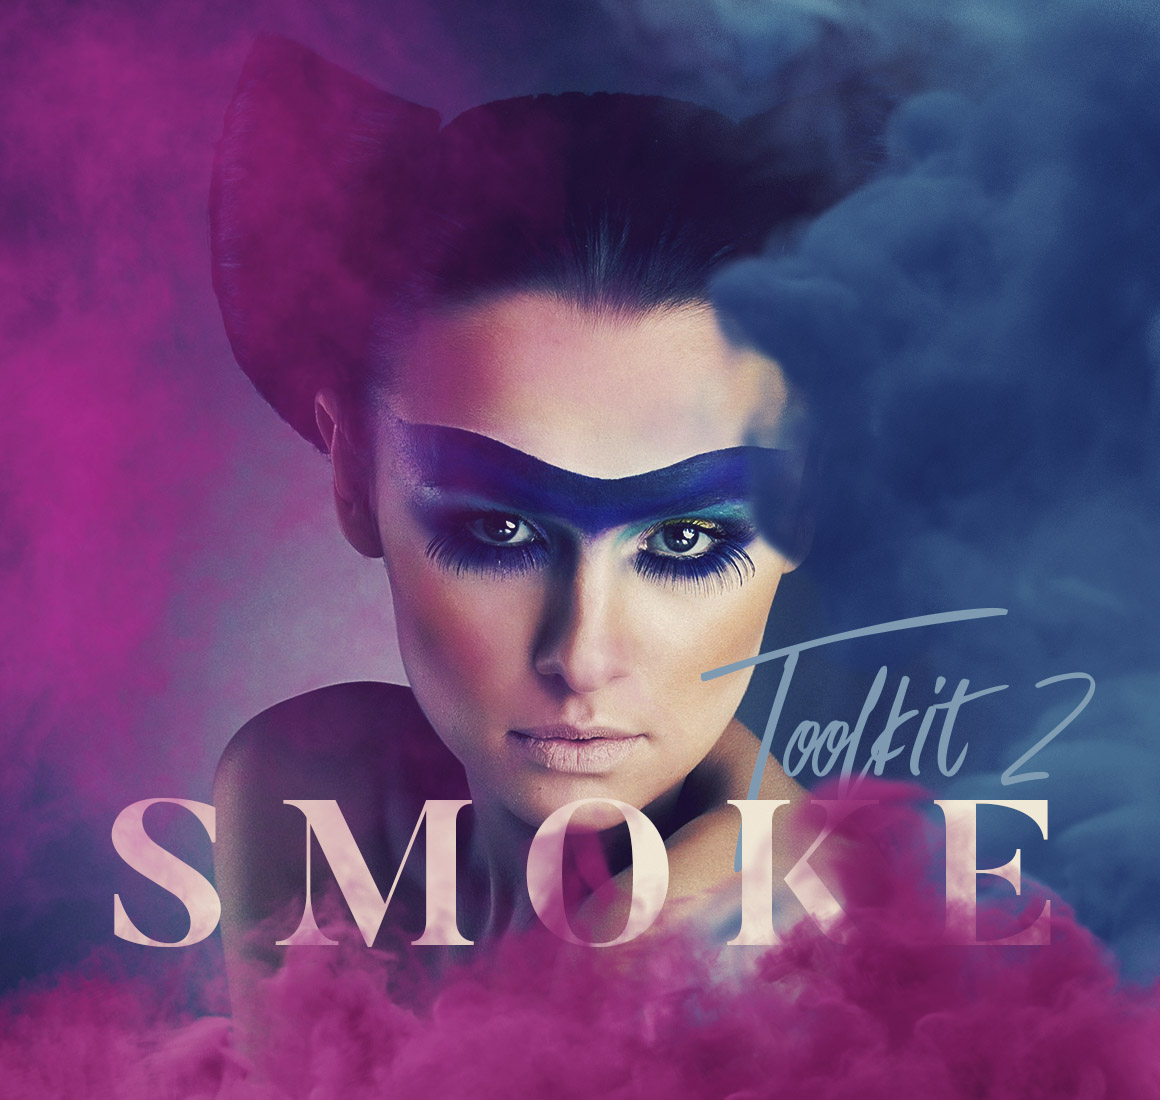 Free Download: Smoke Toolkit